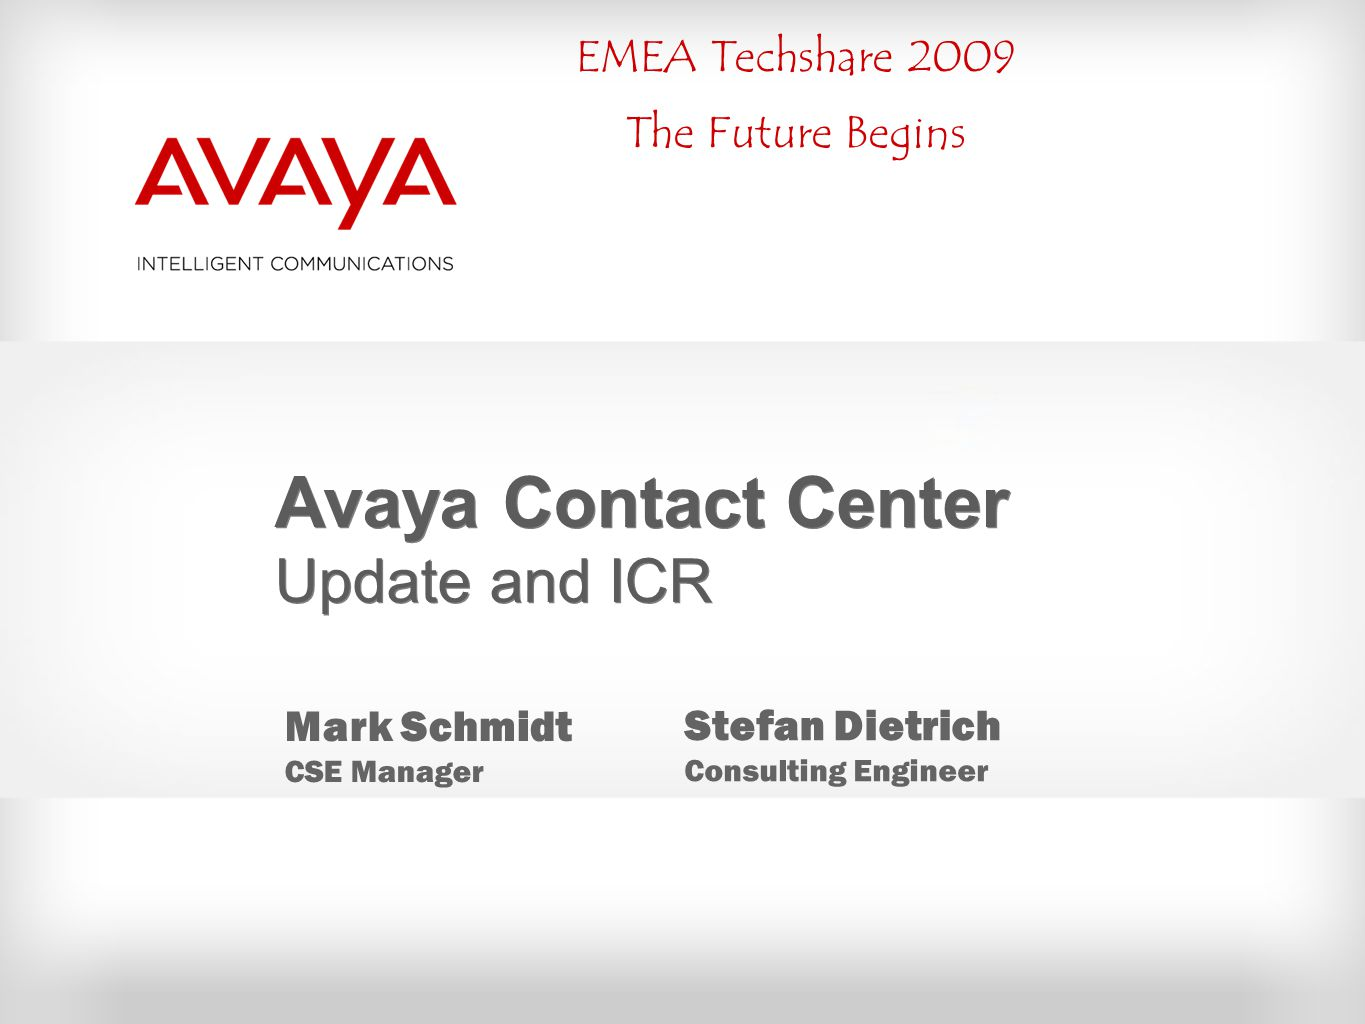 EMEA Techshare 2009 The Future Begins Avaya Contact Center Update and ICR Mark Schmidt CSE Manager Stefan Dietrich Consulting Engineer